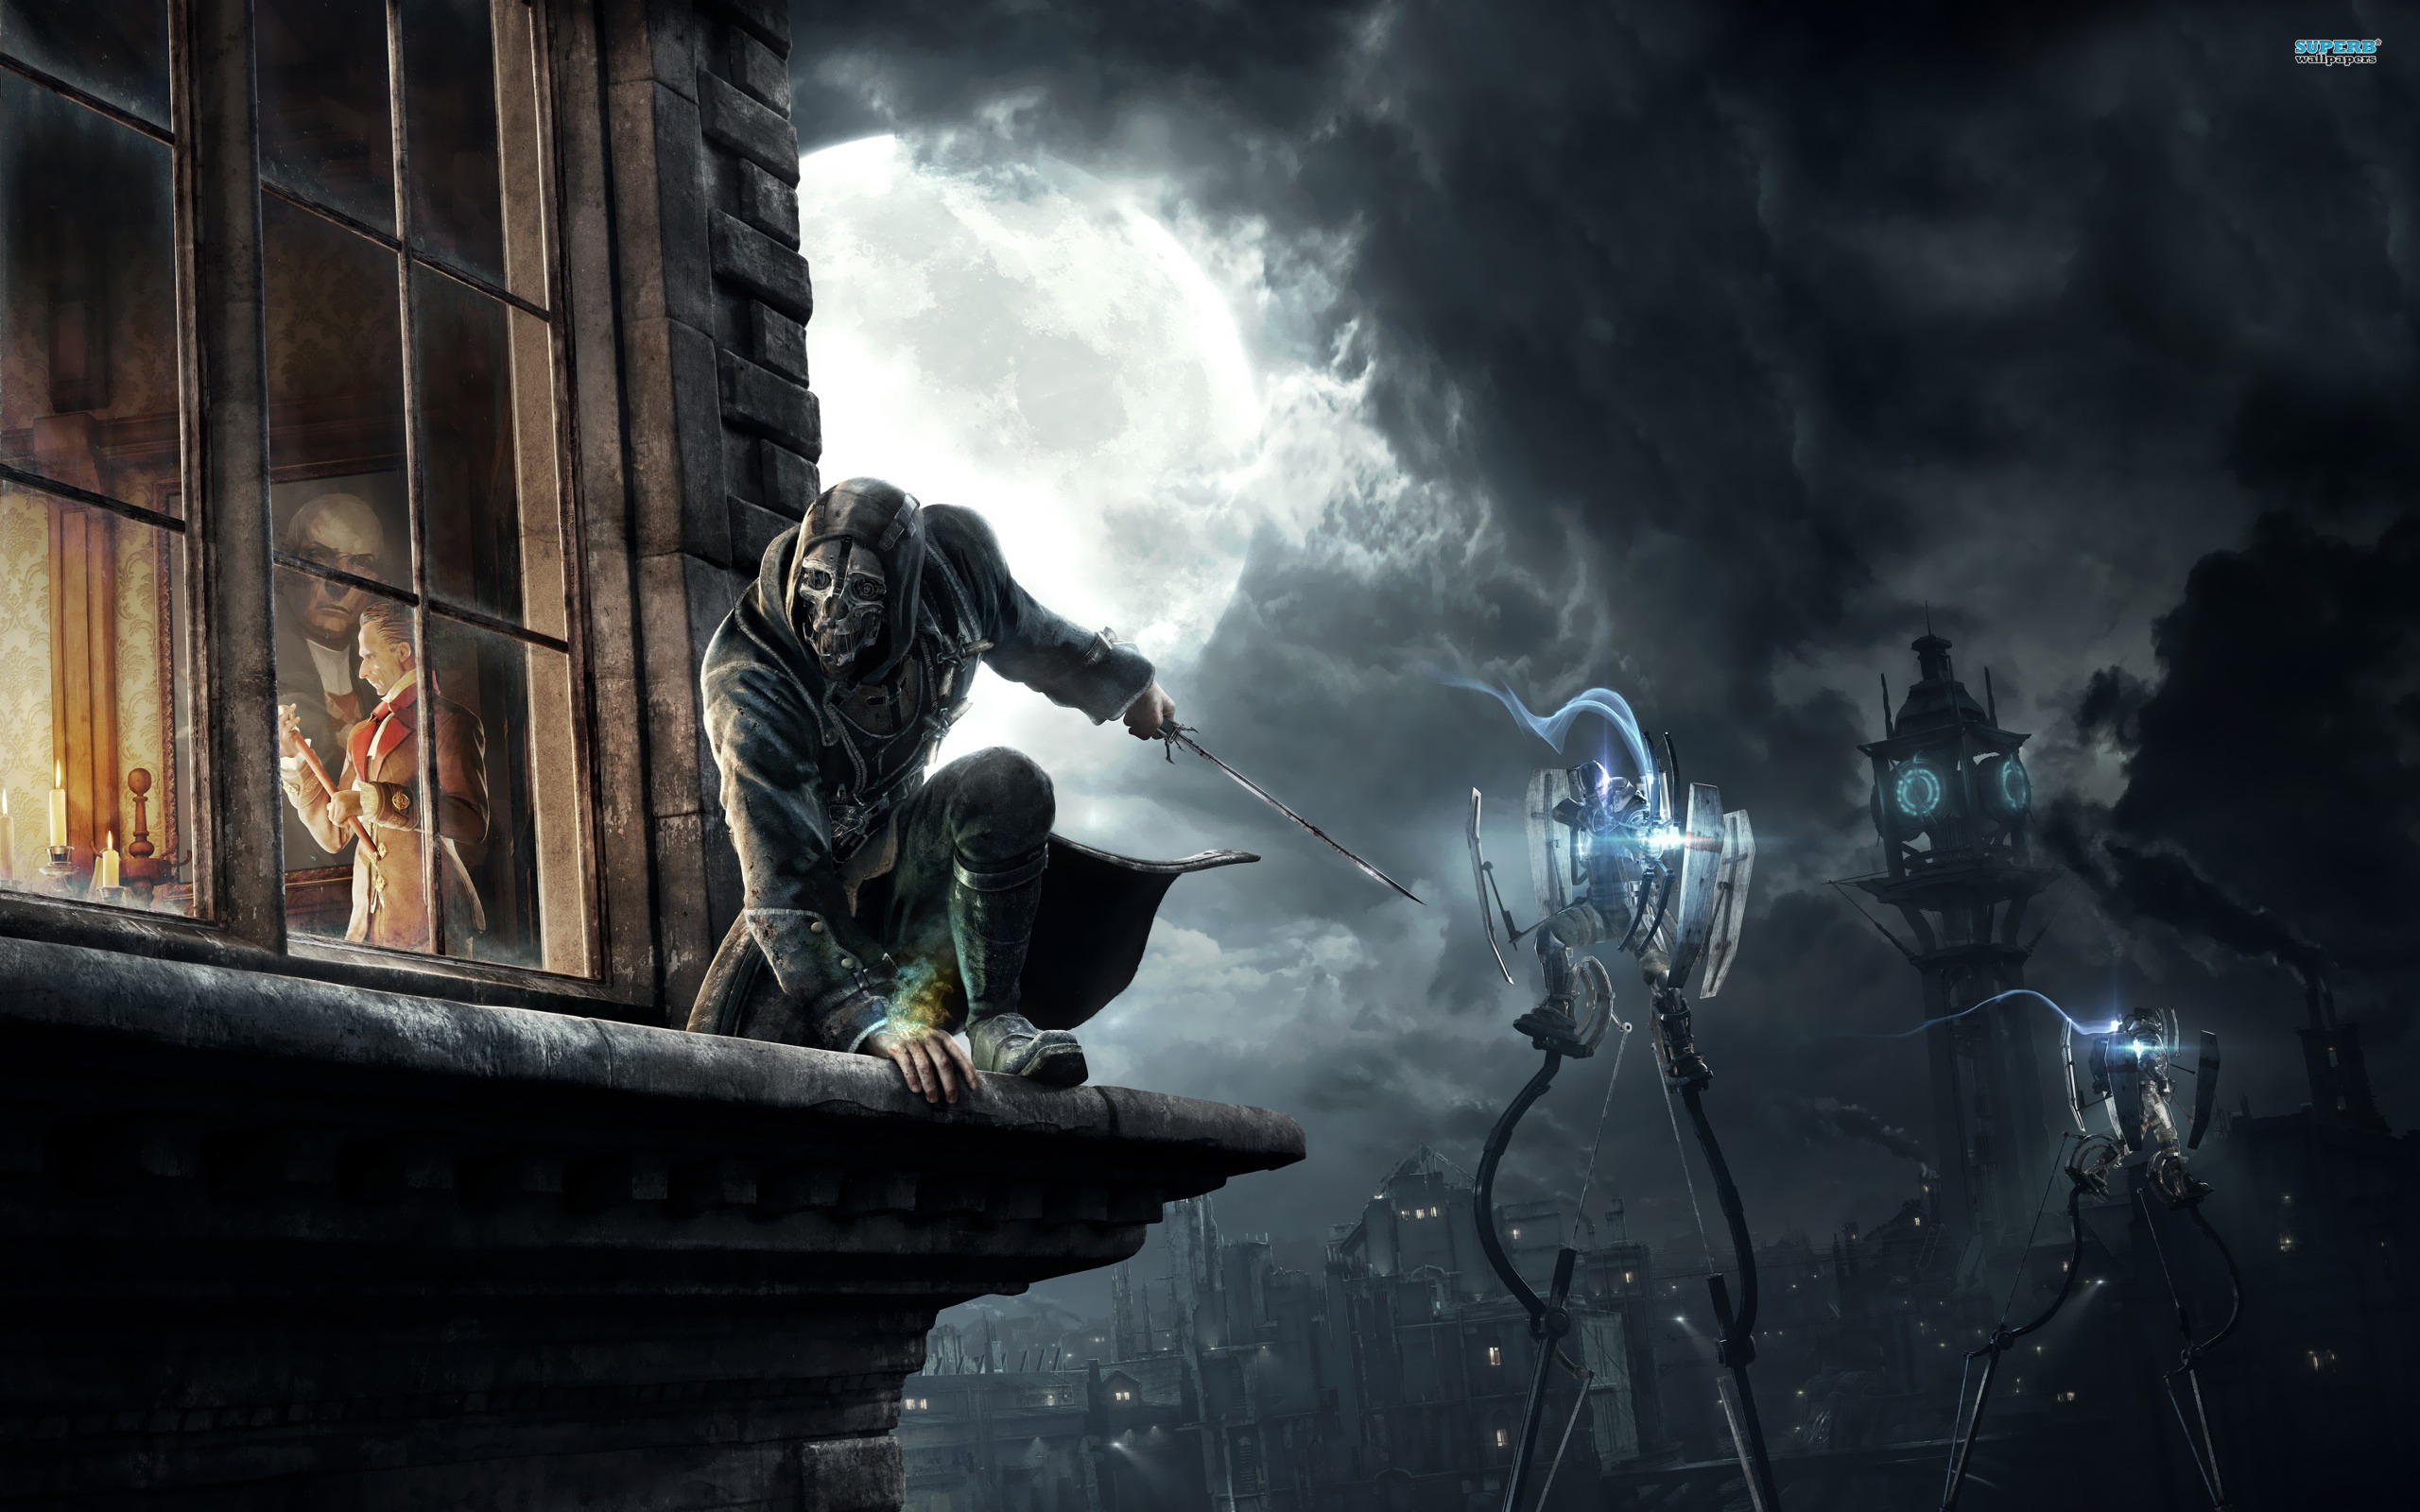 Dishonored wallpaper 2560x1600 jpg